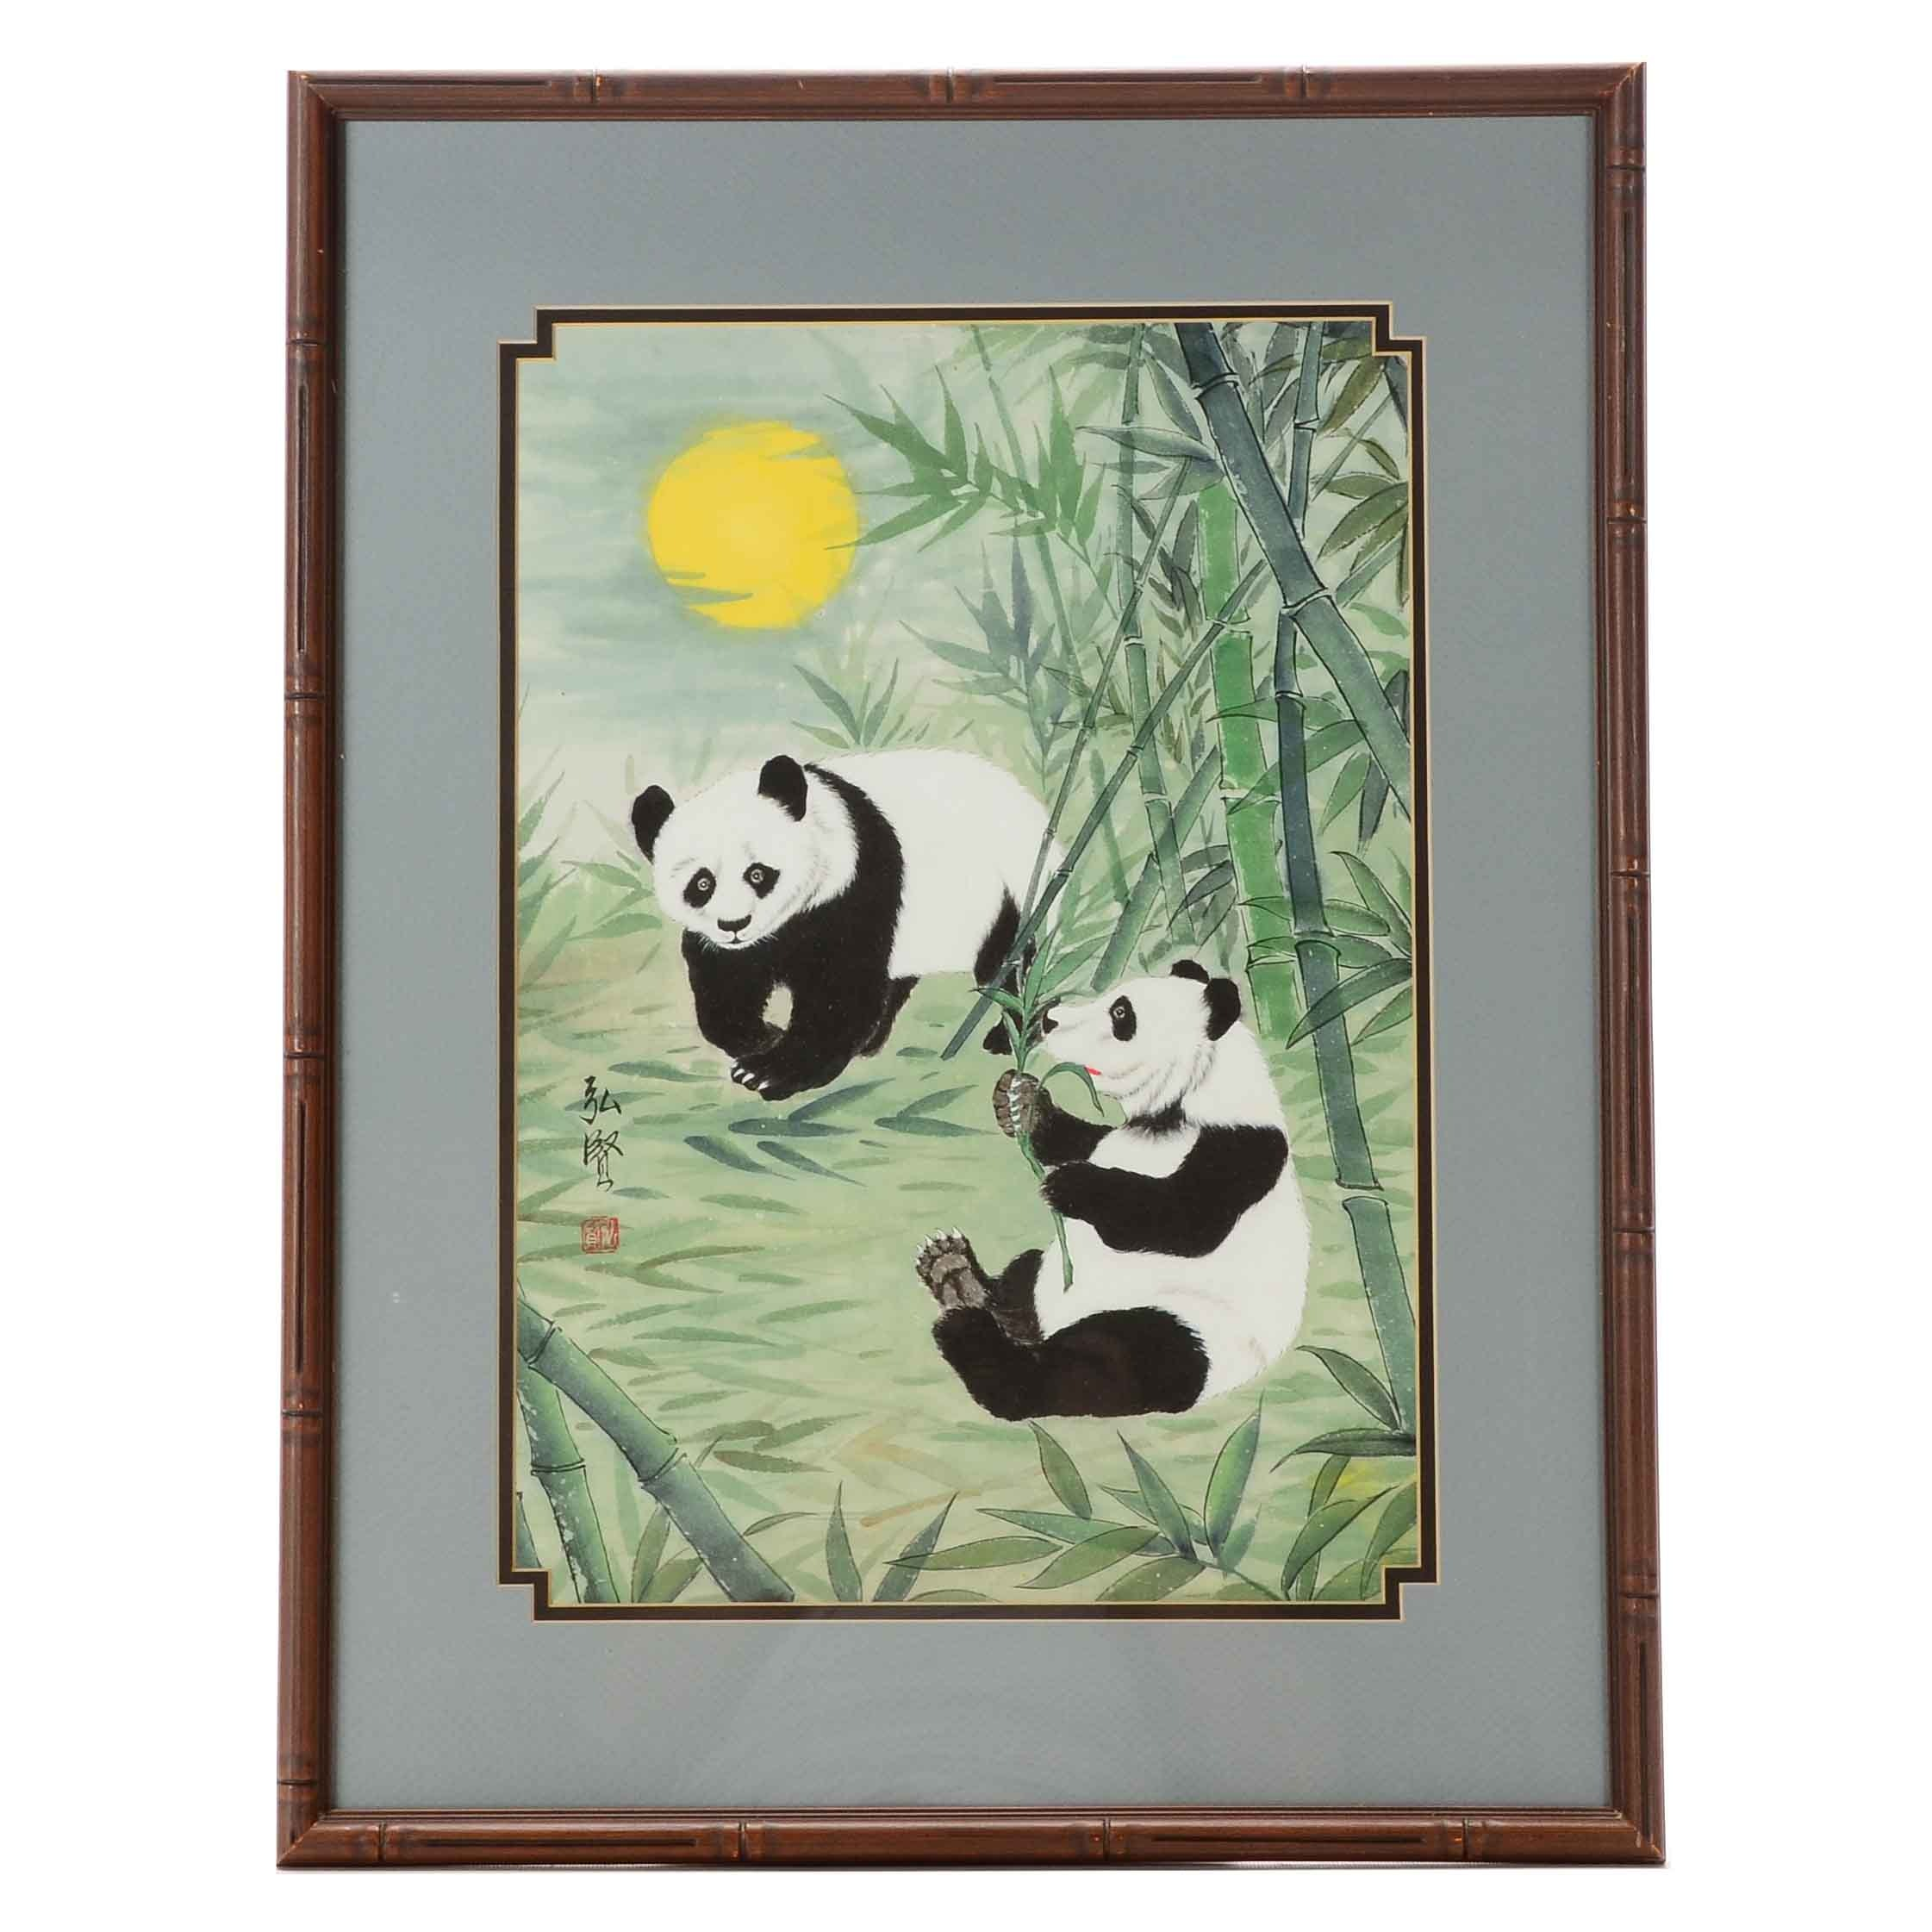 Chinese Ink and Watercolor Illustration of Pandas